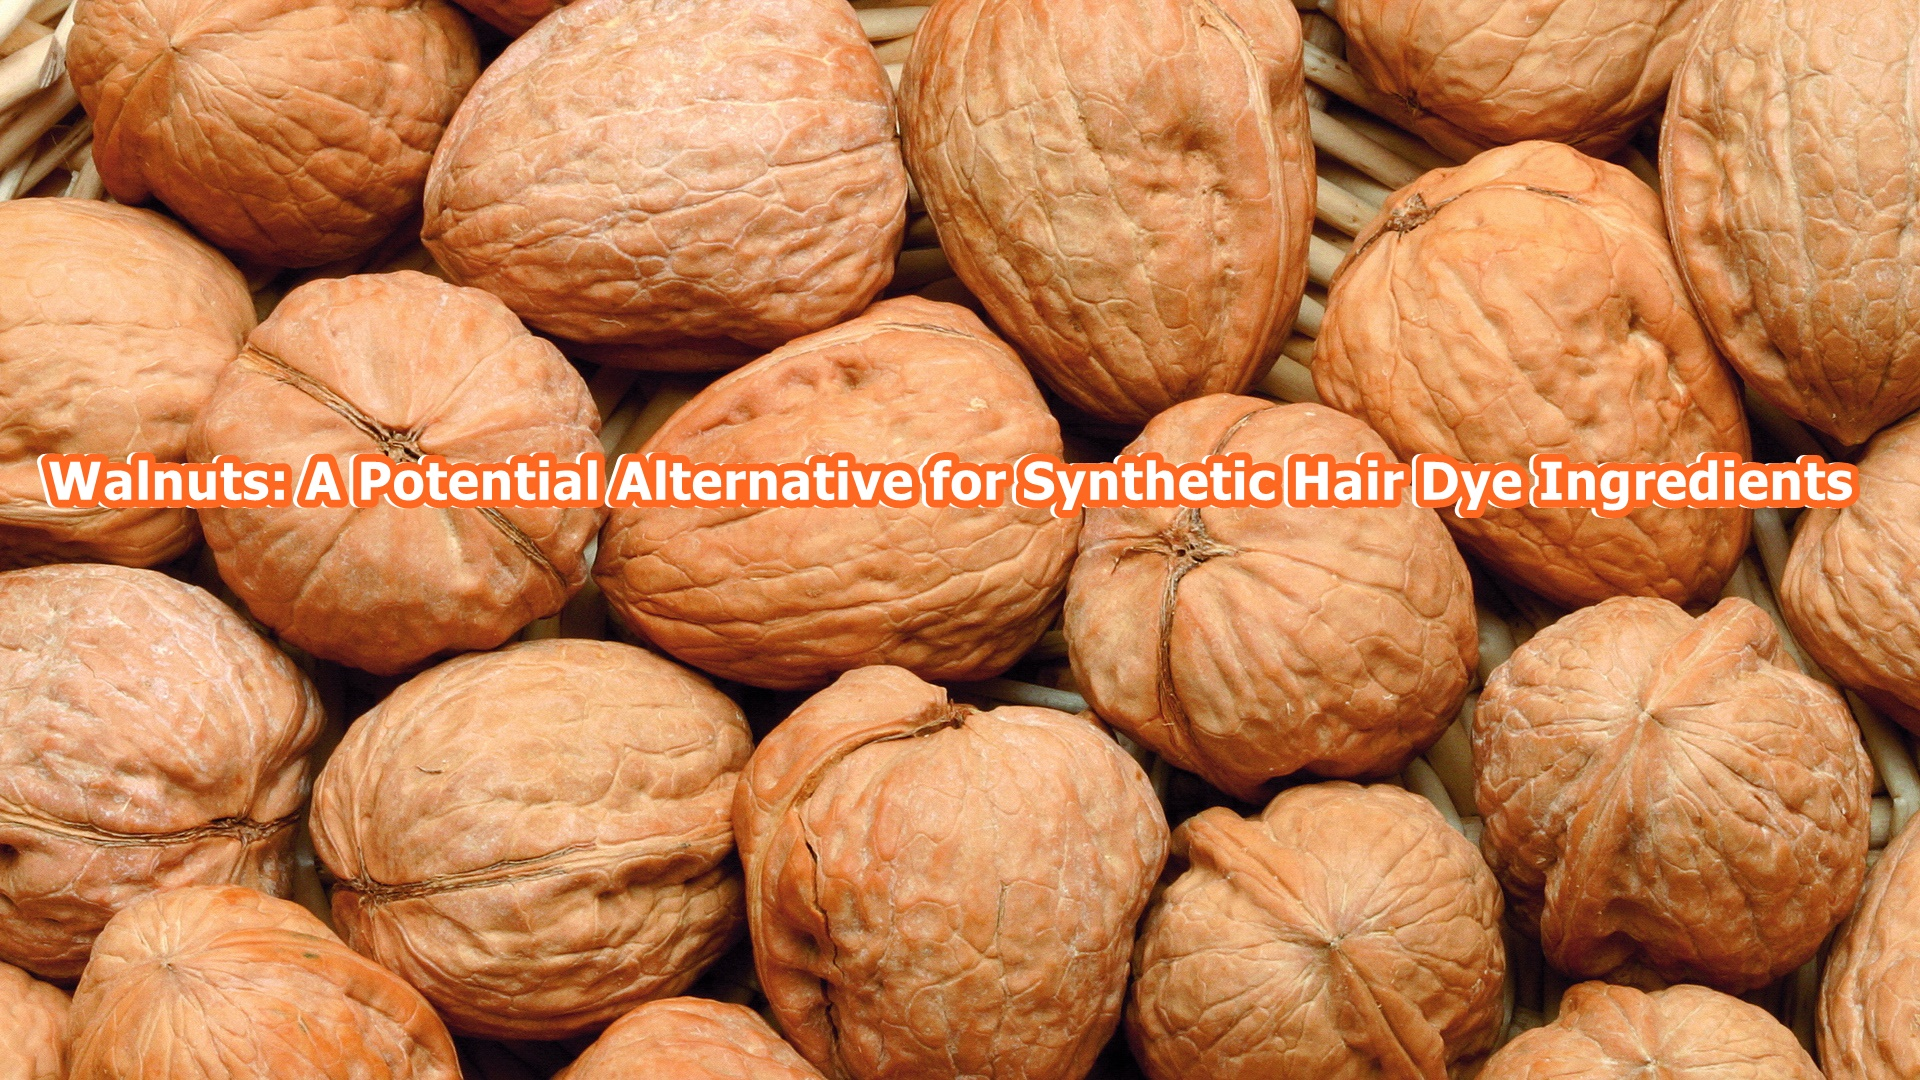 Walnuts: A Potential Alternative for Synthetic Hair Dye Ingredients